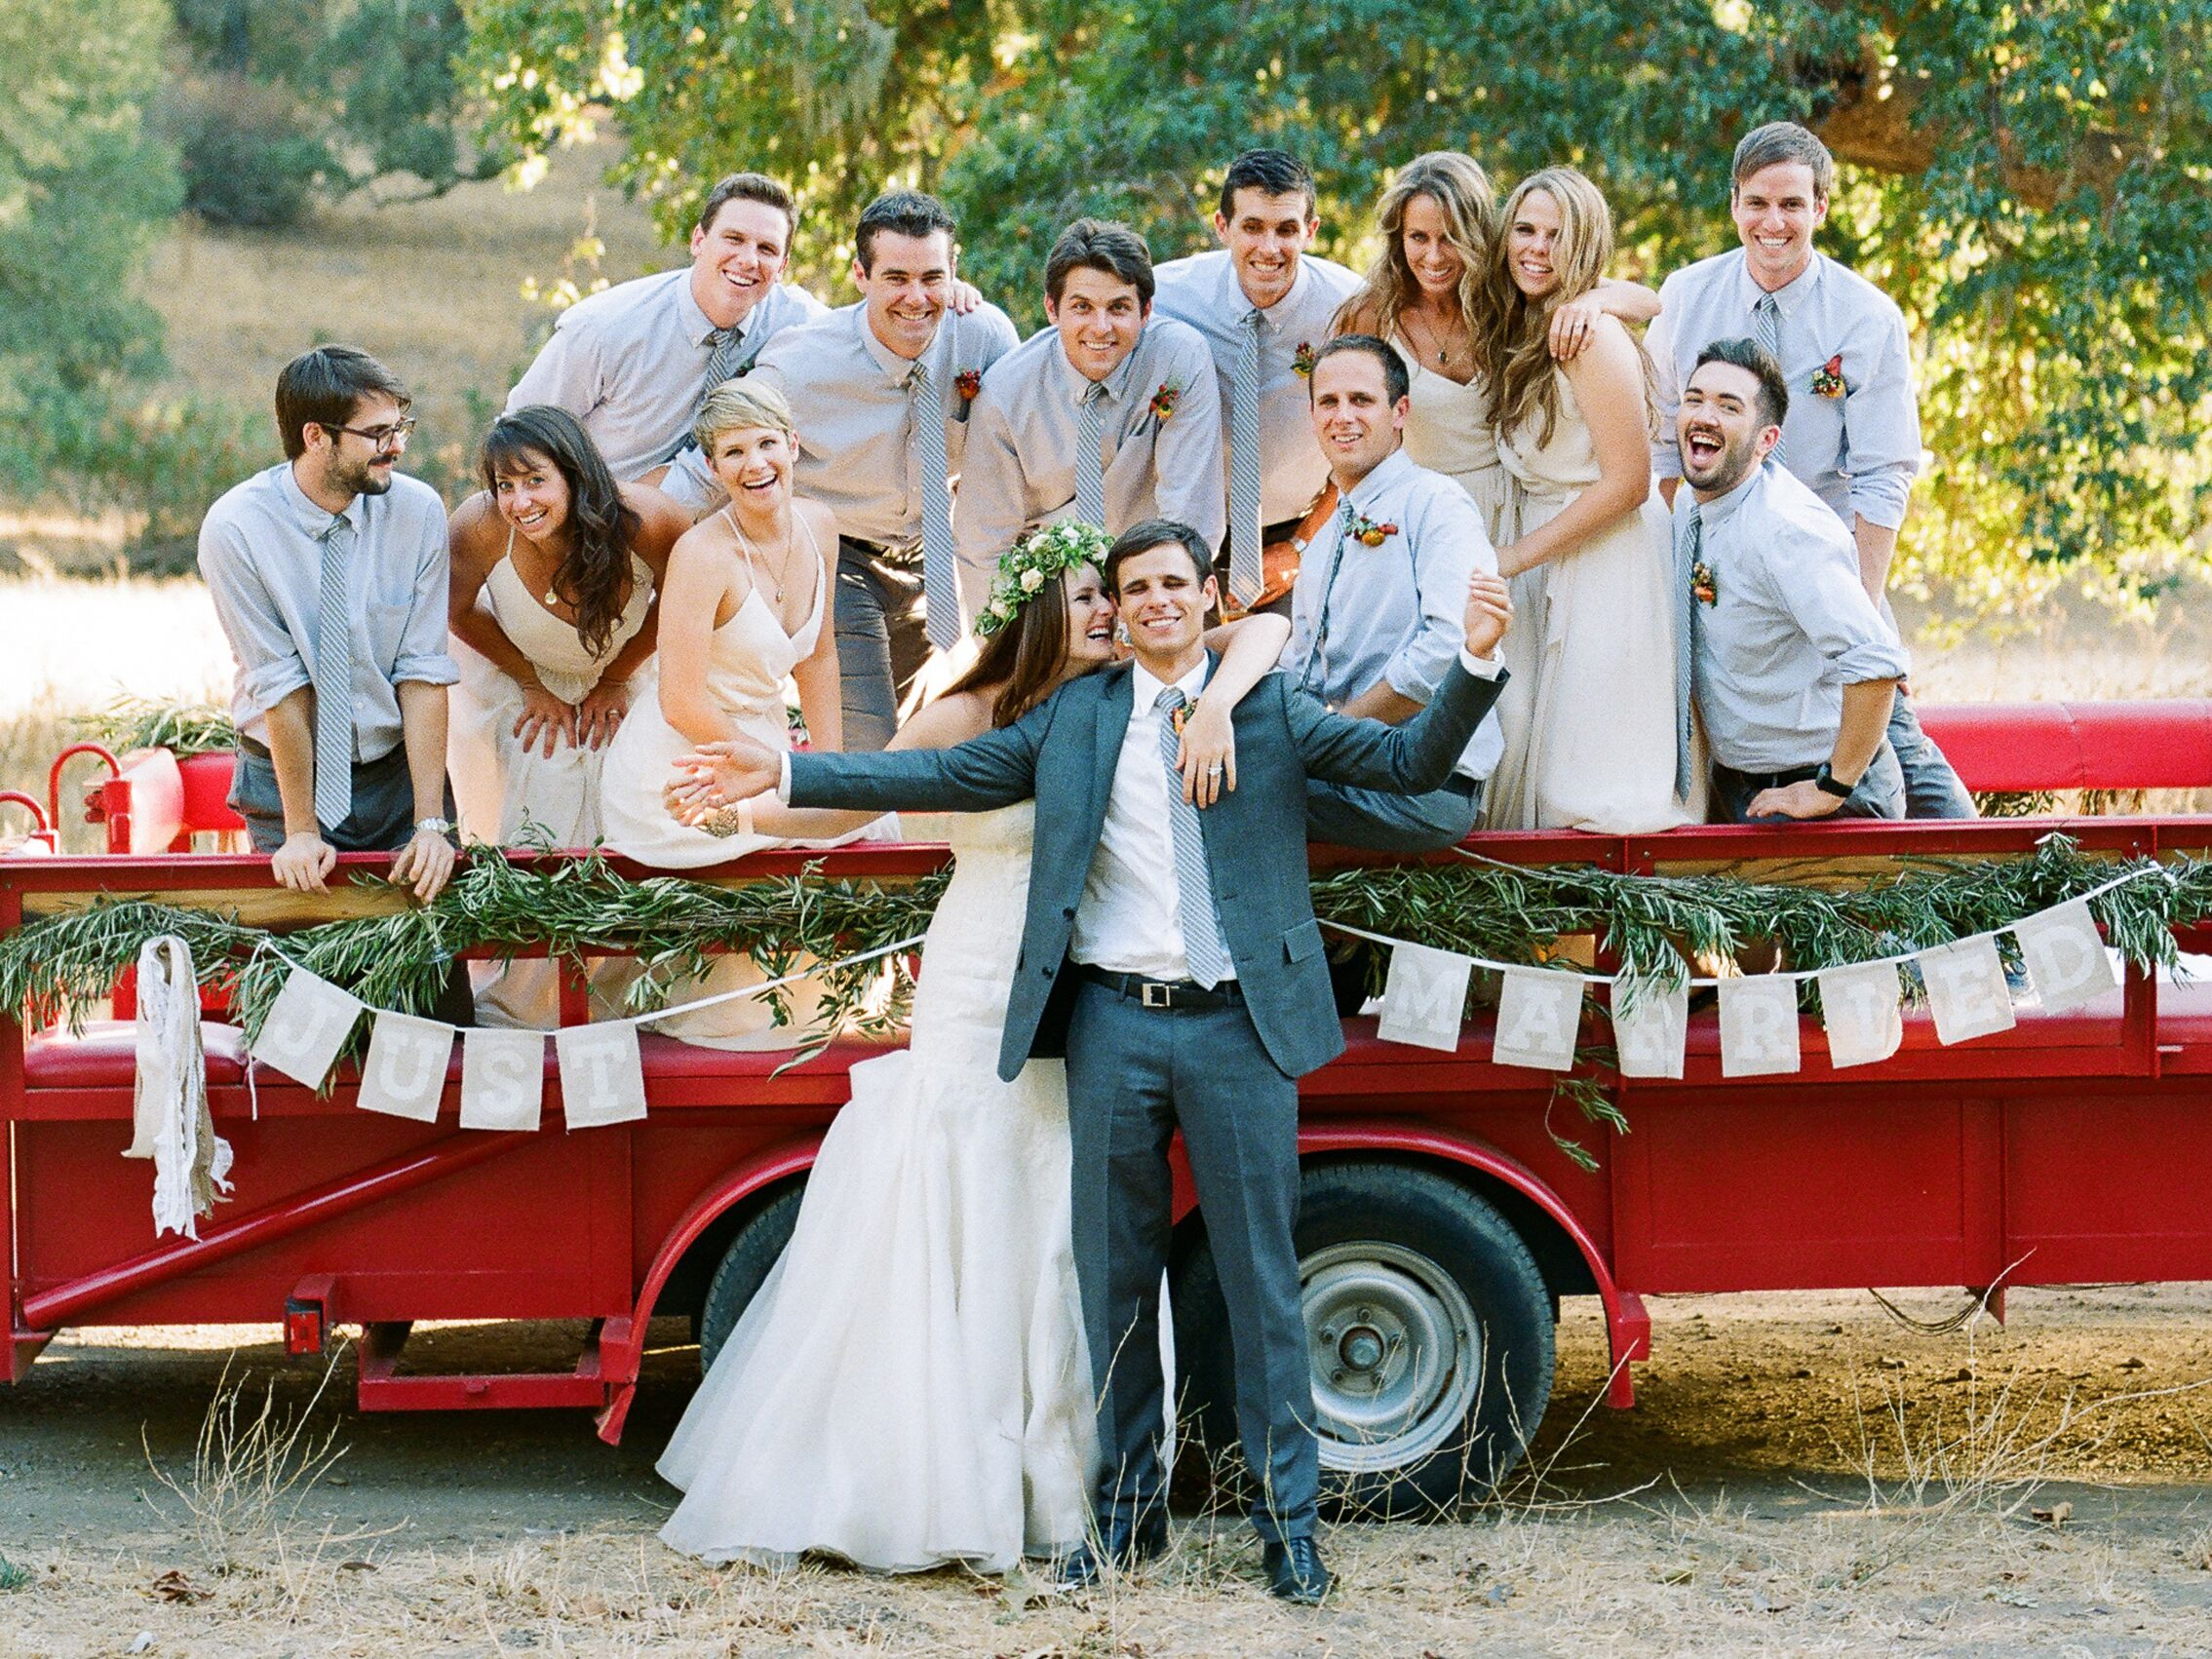 Wedding Party Positions And Roles The Knot